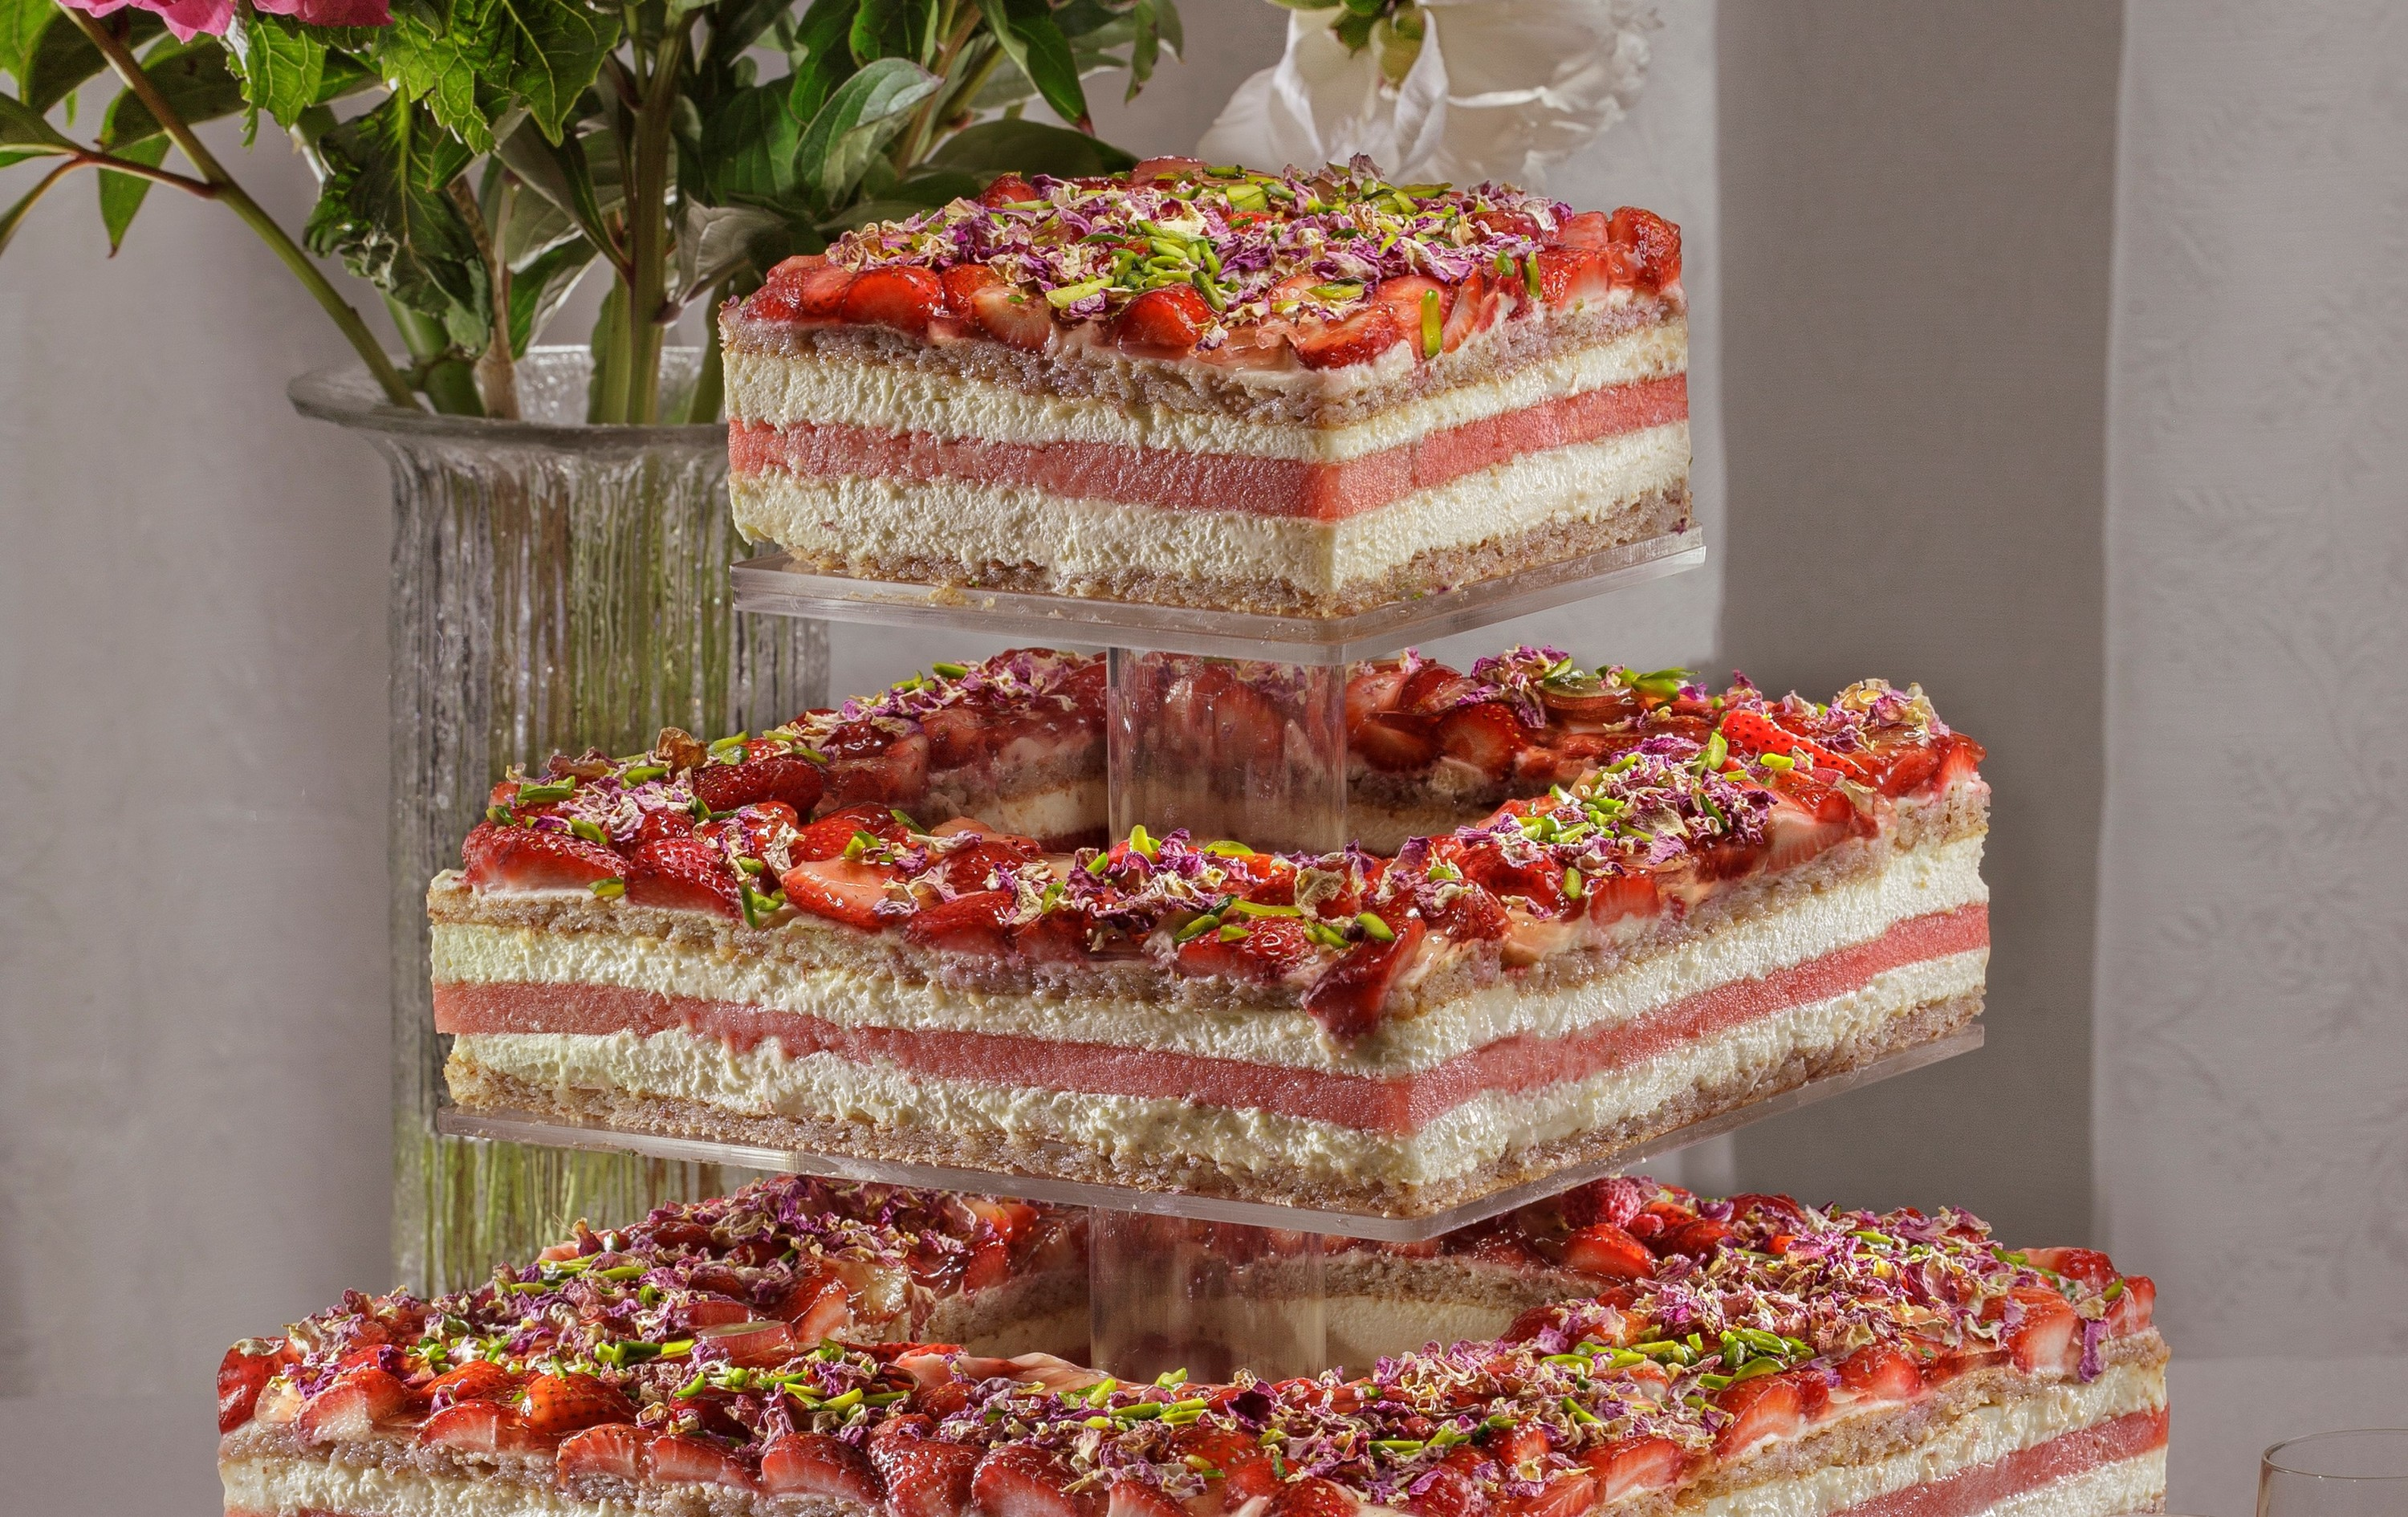 Black Star Pastry - Strawberry Watermelon Cake